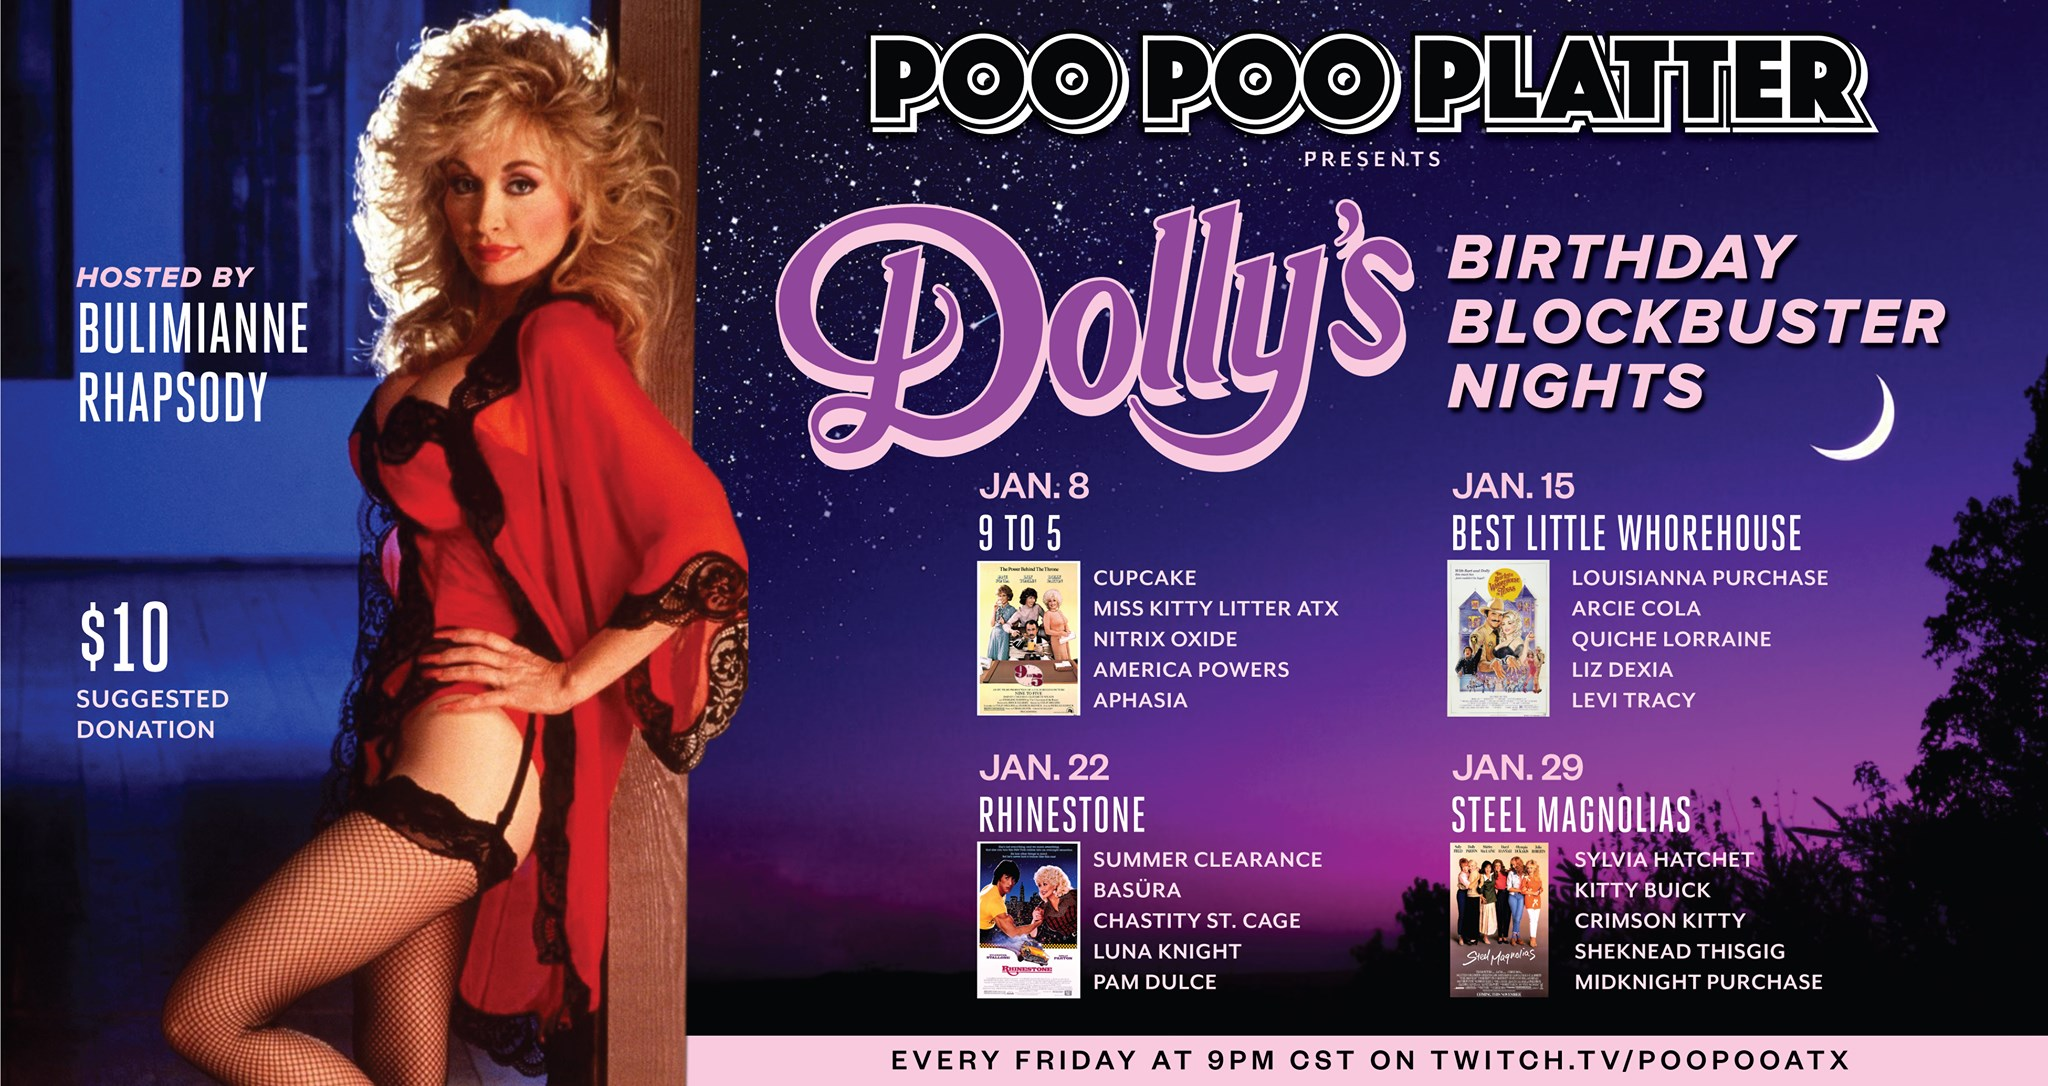 Dolly's Bday Blockbuster Nights: Steel Magnolias